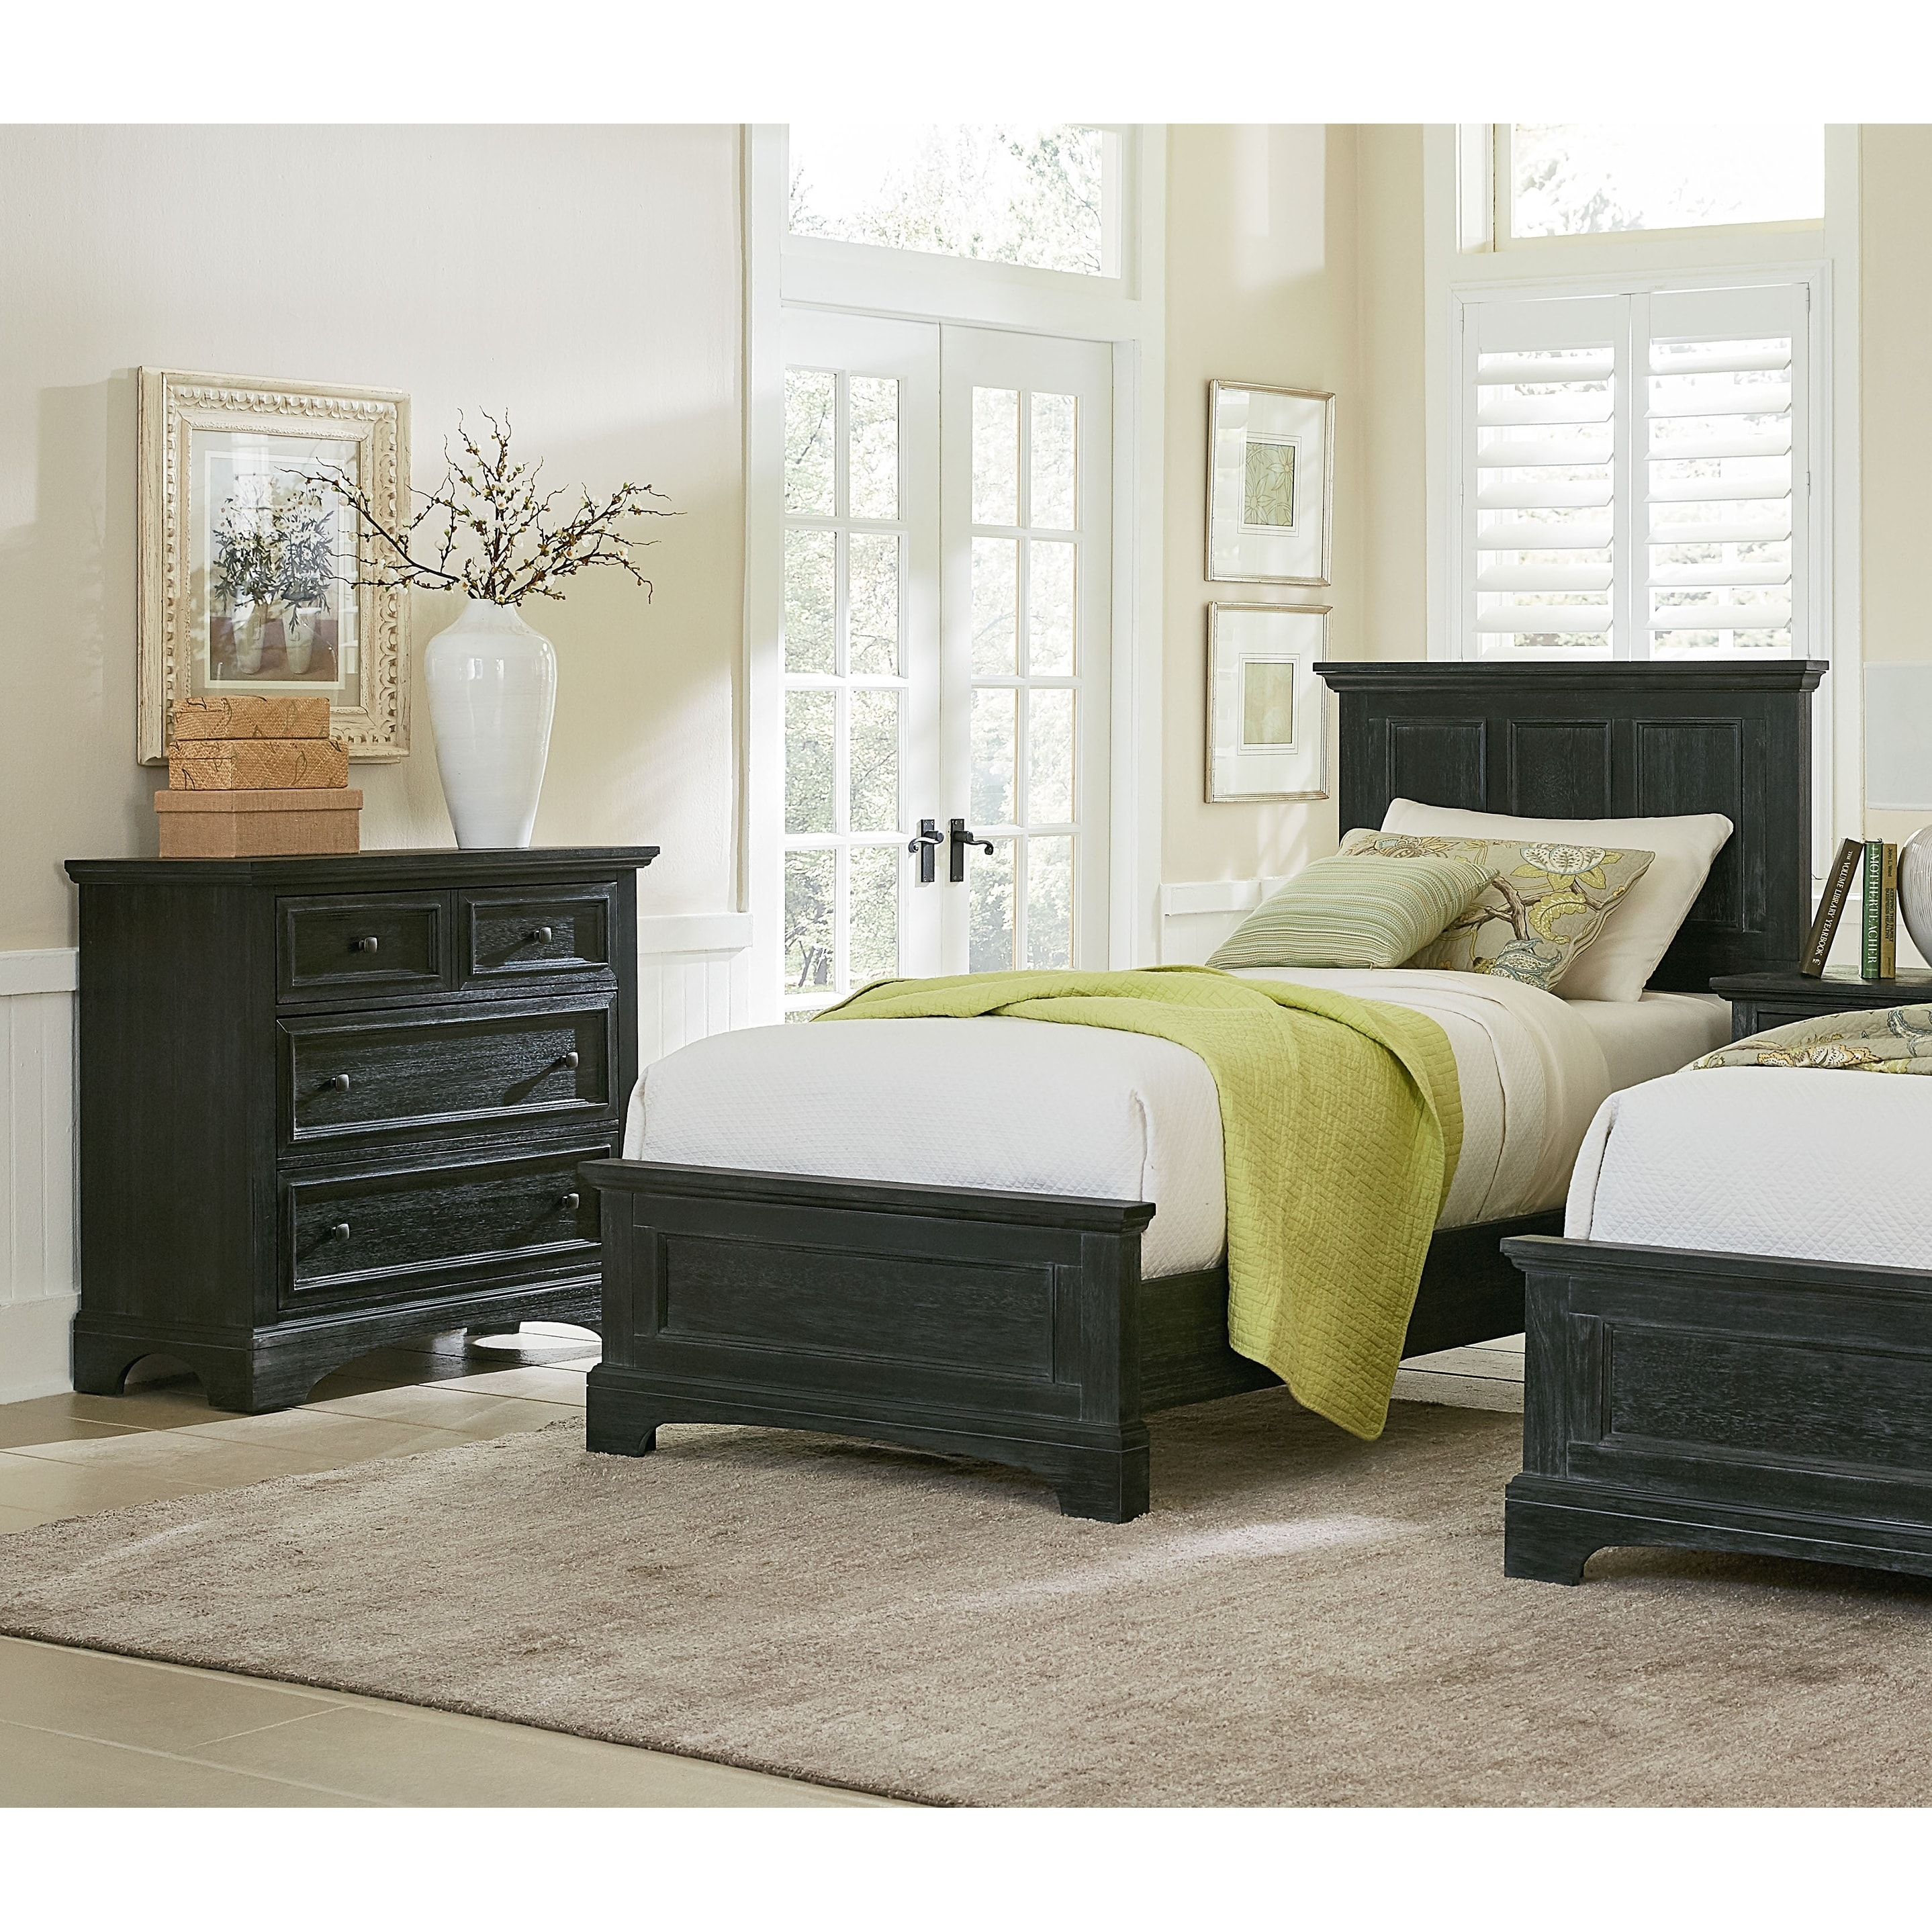 shop inspired by bassett farmhouse basics twin bedroom set with